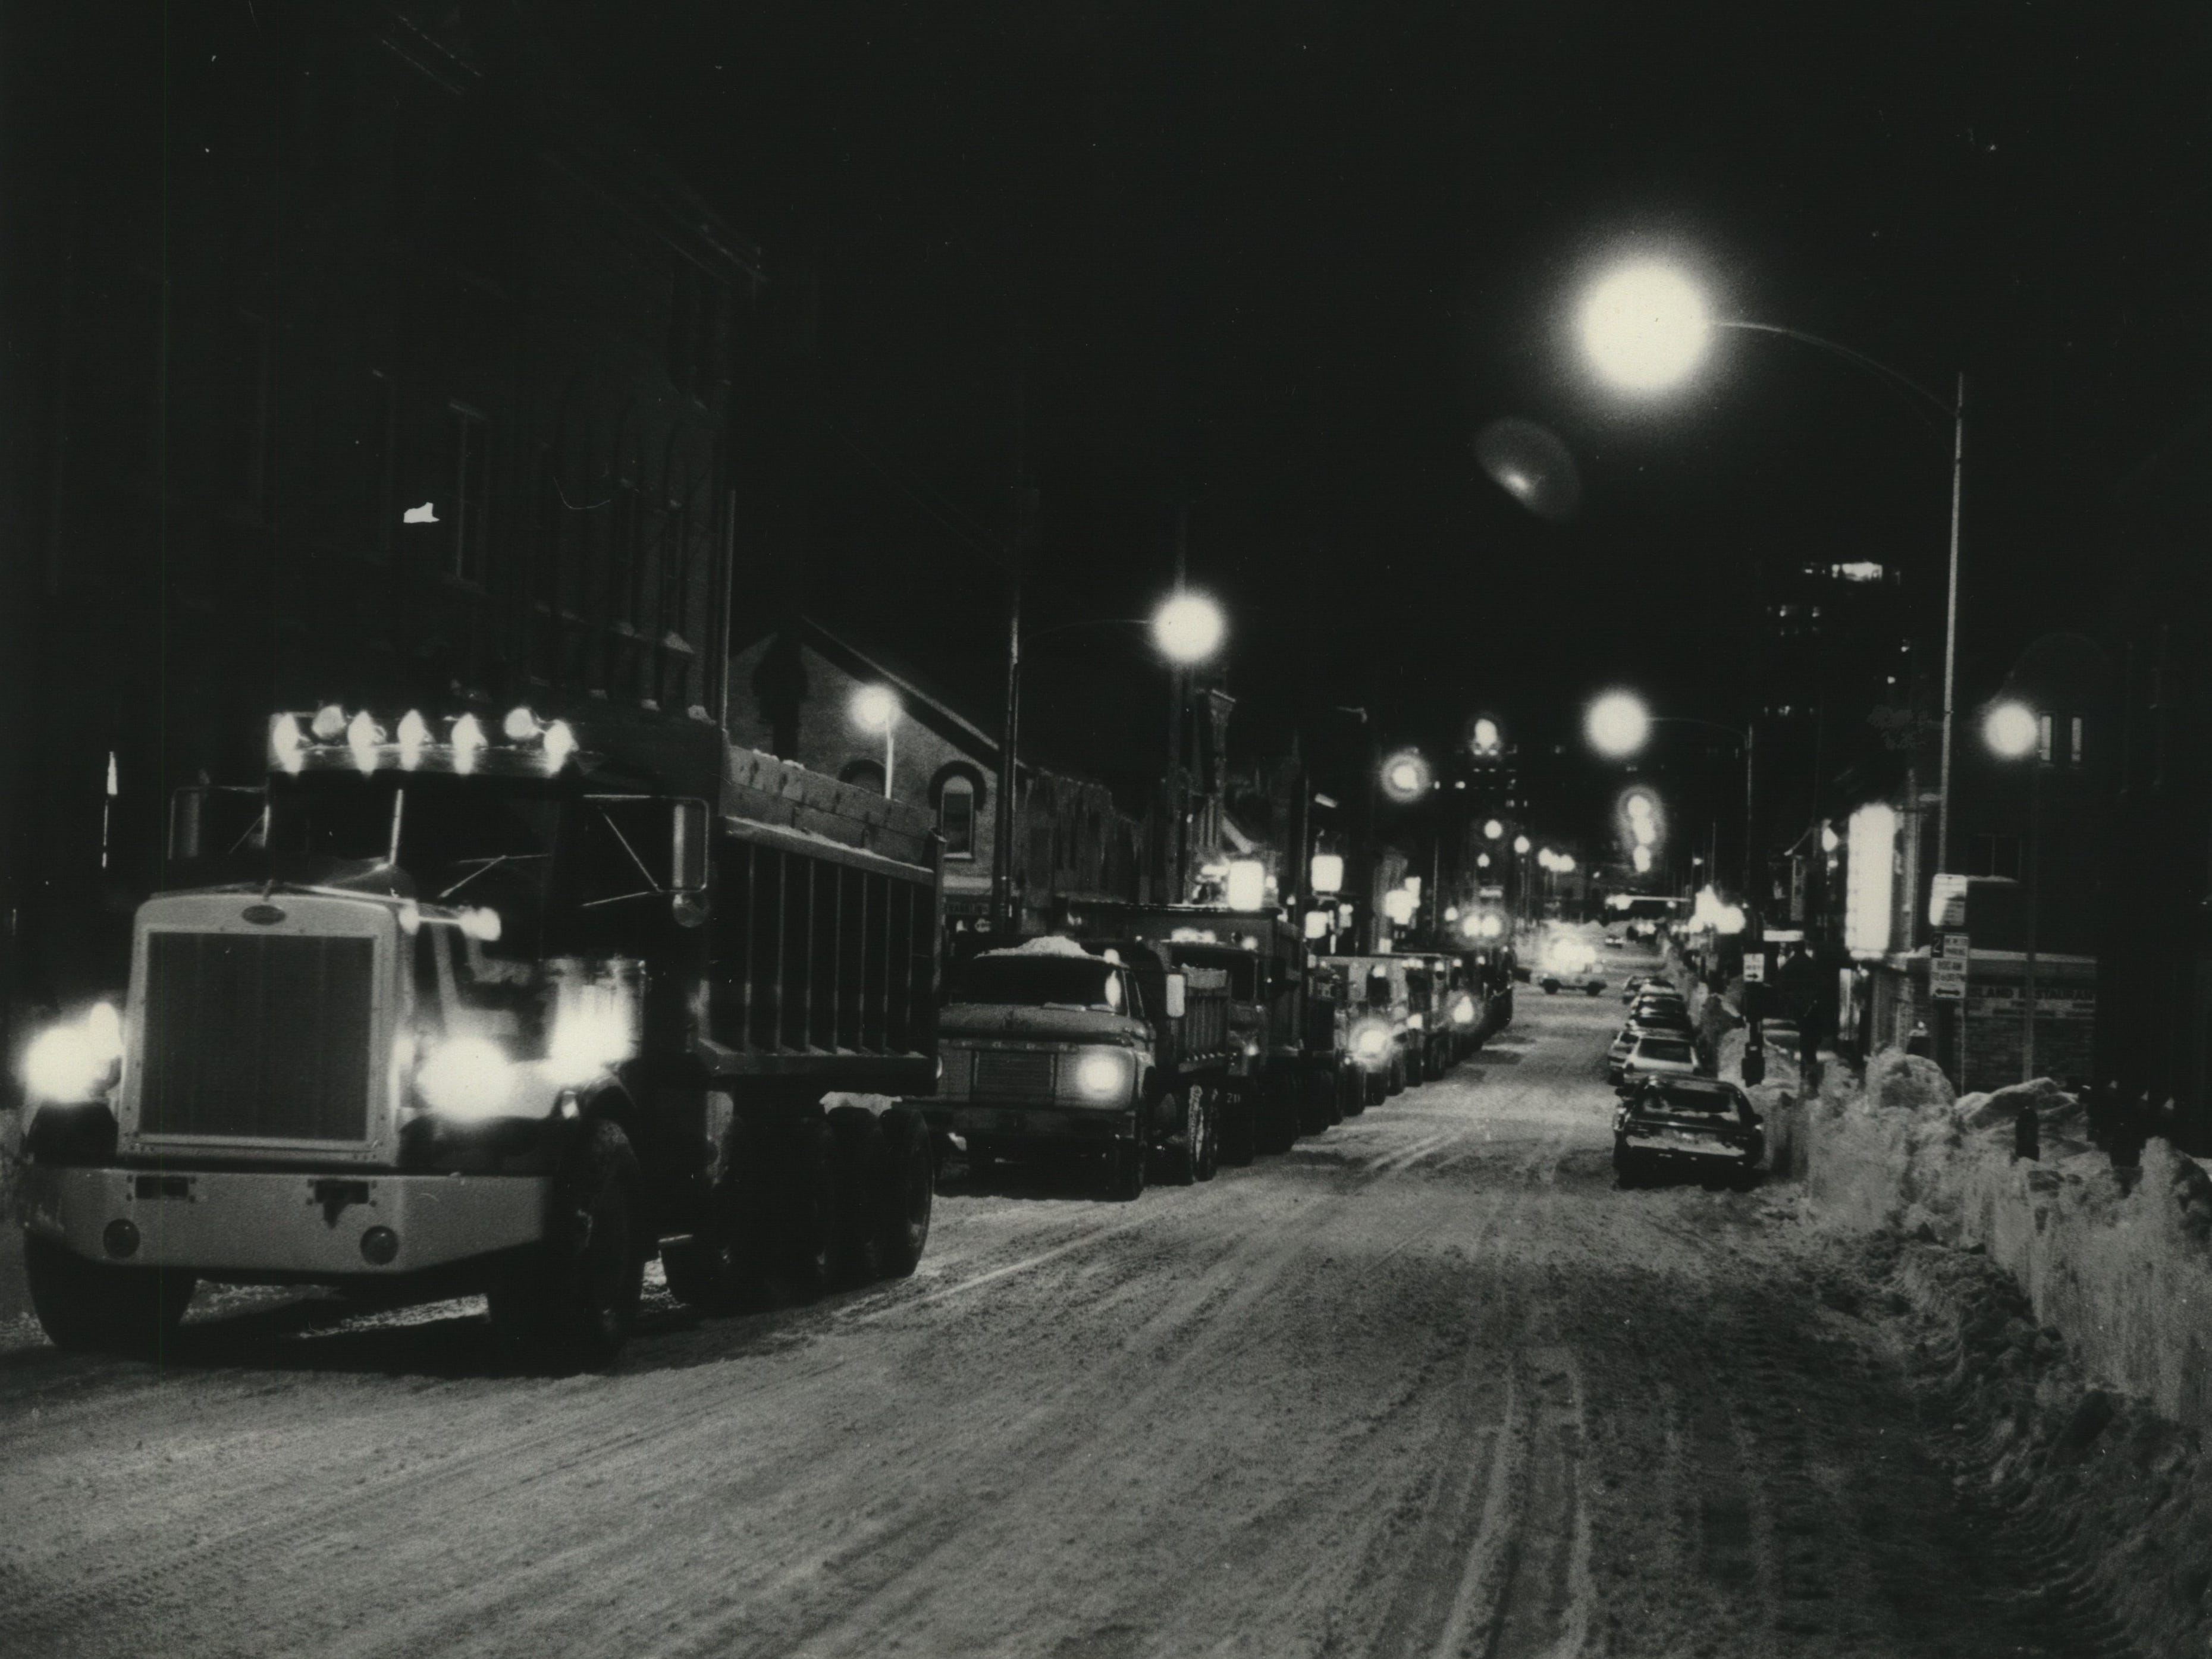 National Guardsmen and city workers invade Brady Street on the city's east side on Jan. 19, 1979, to accelerate cleanup after Milwaukee was hit by its second major snowstorm in two weeks. This photo was published in the Jan. 20, 1979, Milwaukee Sentinel.